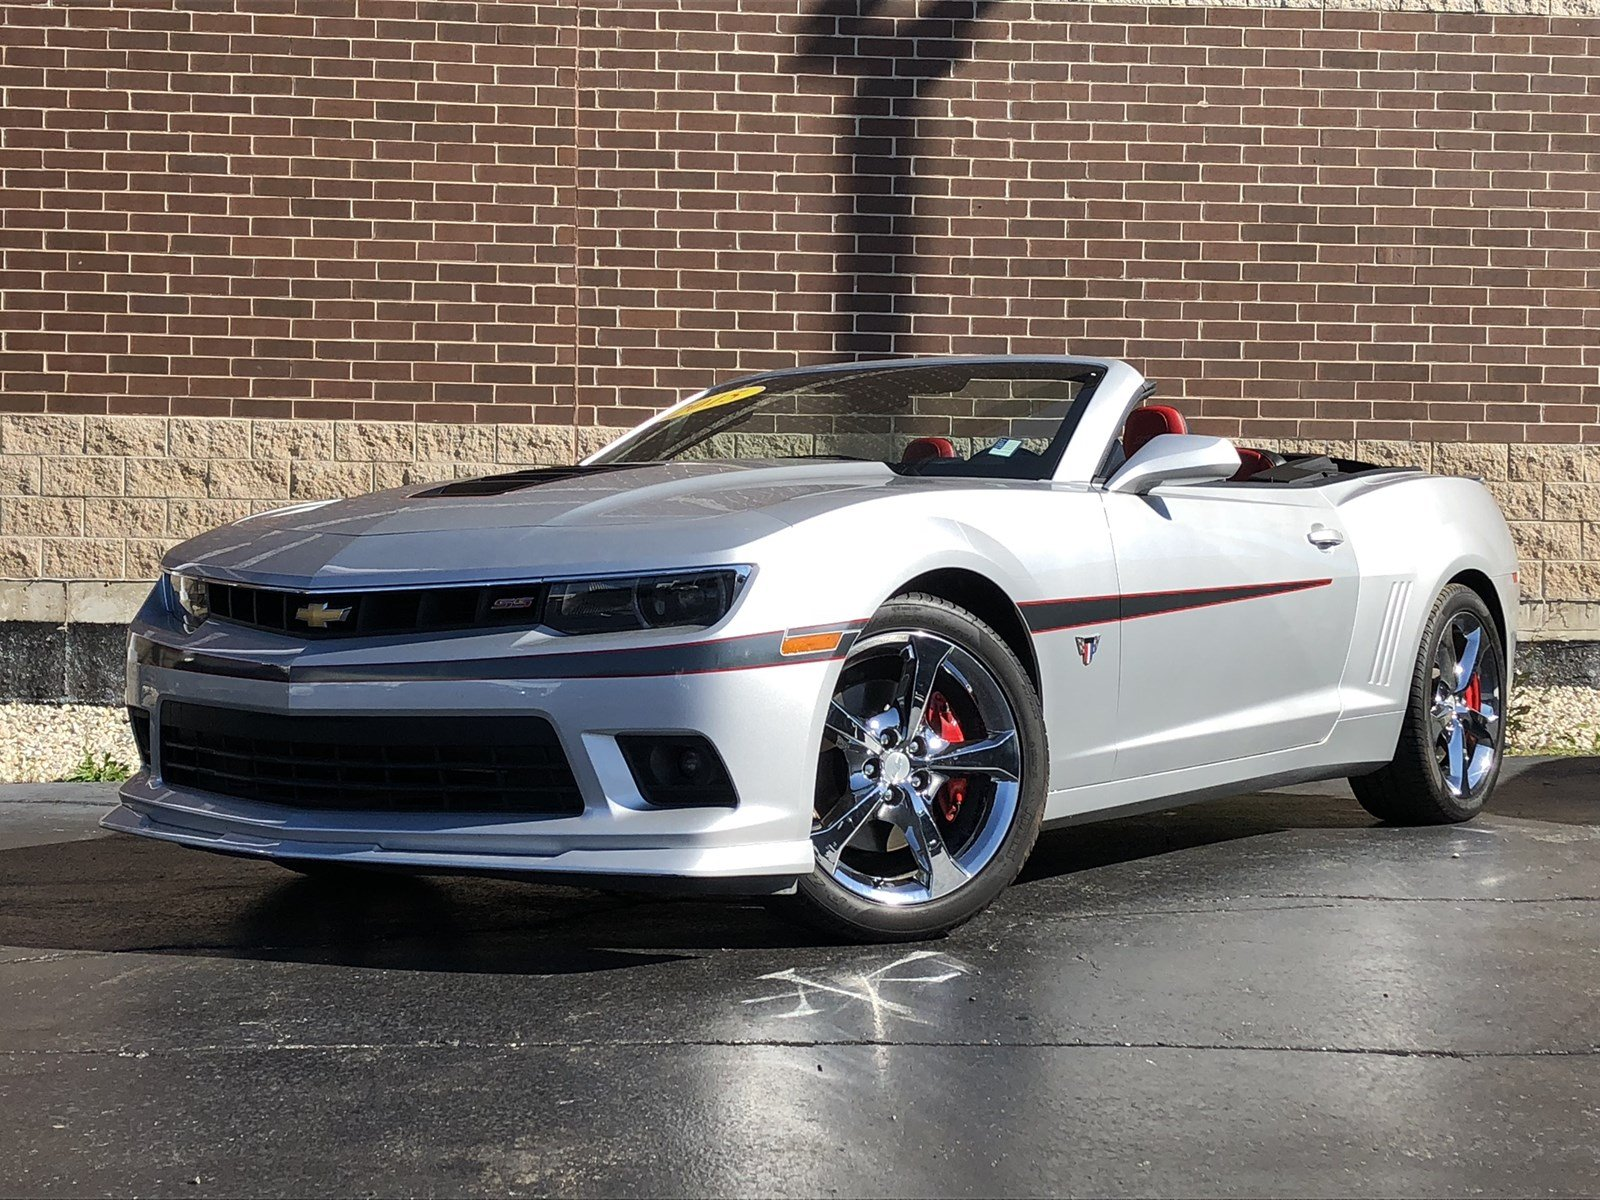 Certified Pre-Owned 2015 Chevrolet Camaro SS Convertible COMMEMORATIVE EDITION